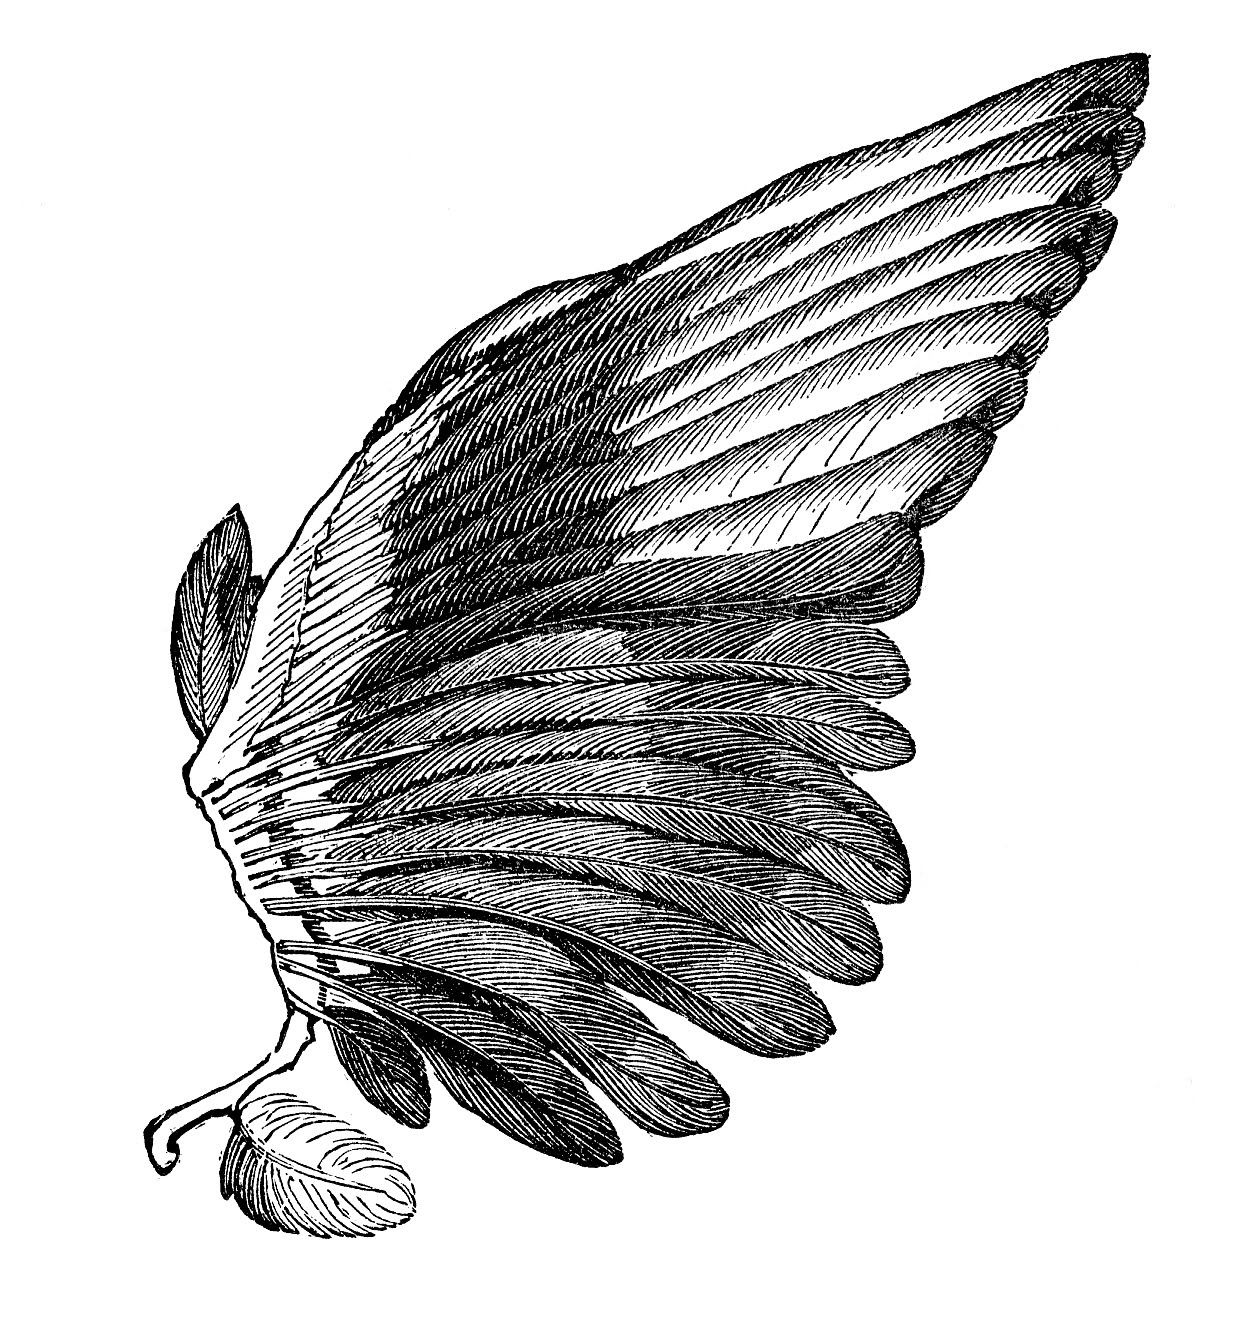 Vintage clip art image. Wing clipart feather wing